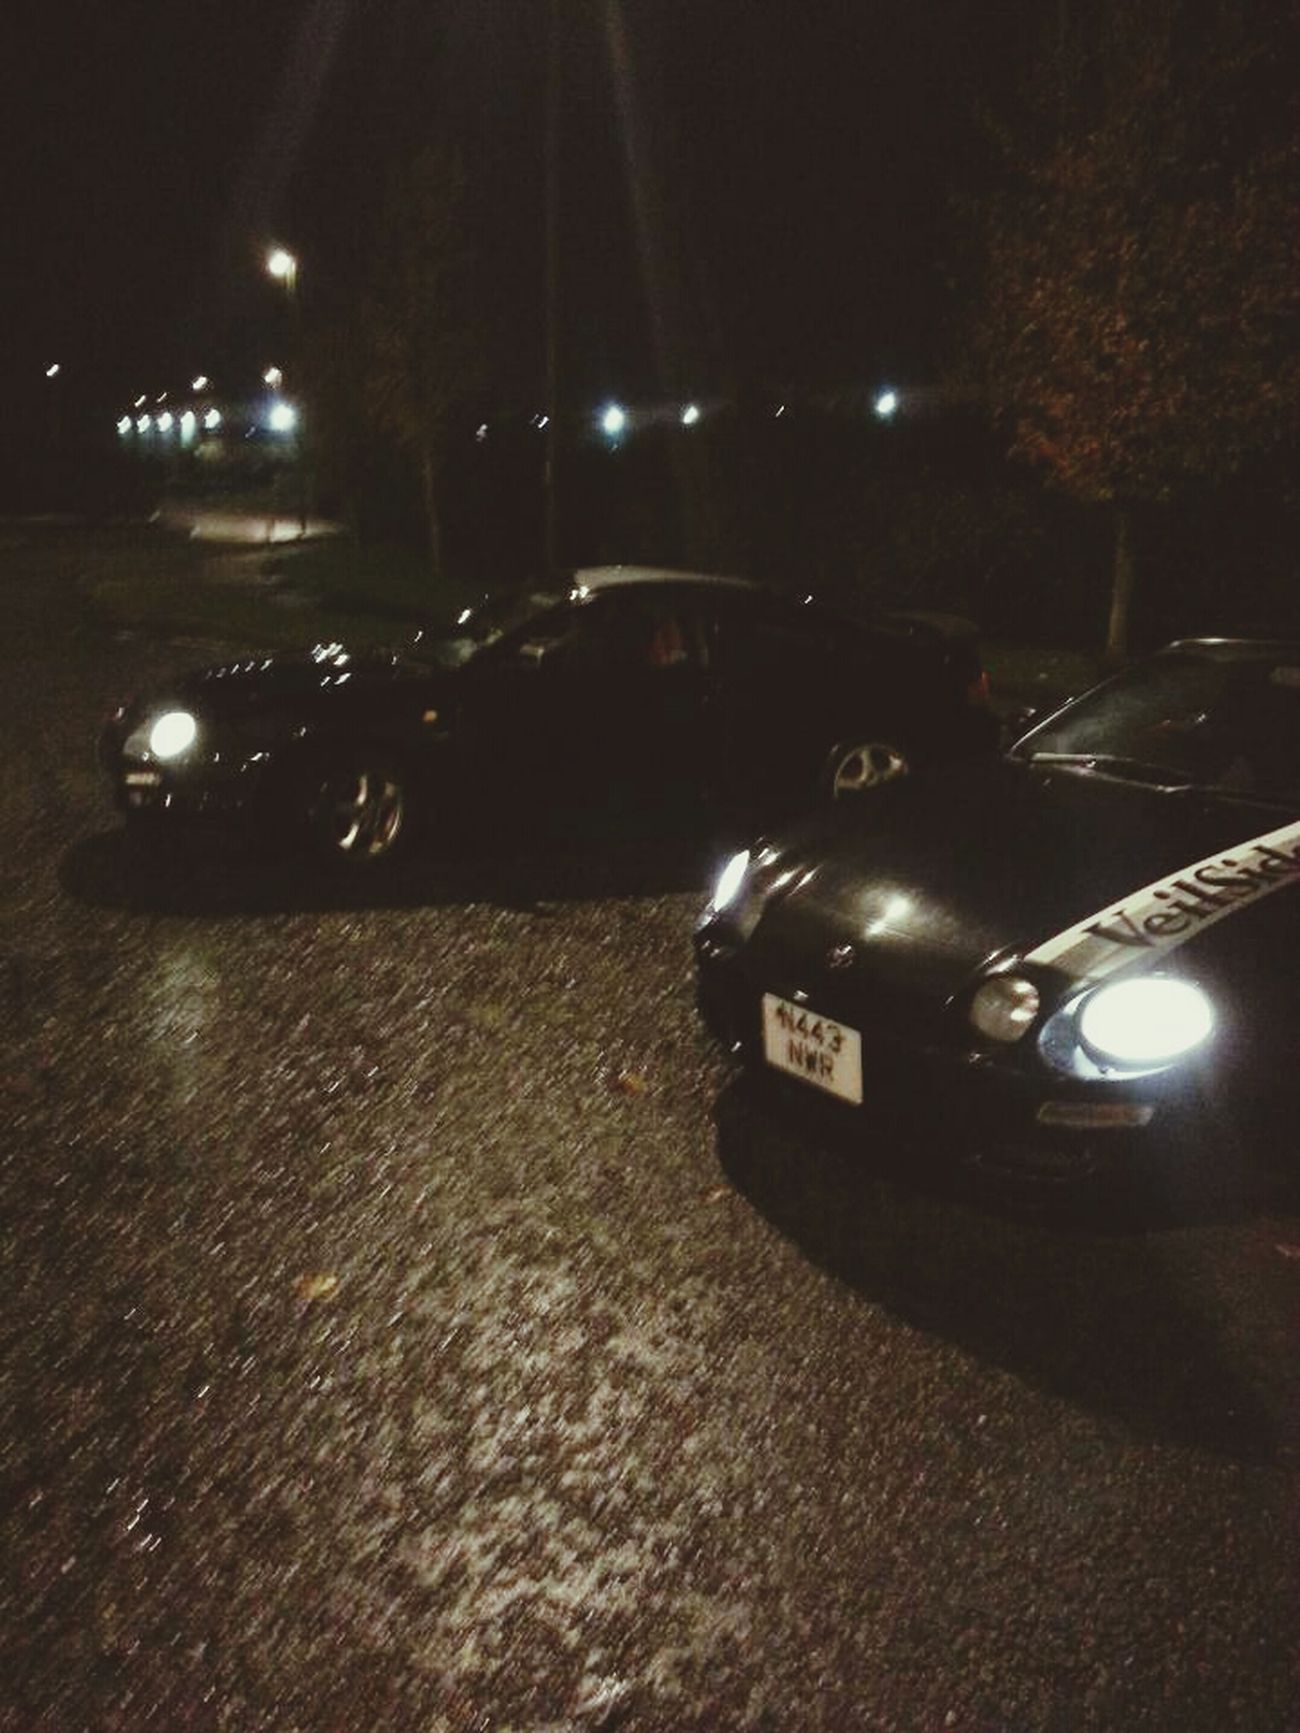 My import celica and my mates uk spec celica, 6th gen, differences mine was tuned up in japan with veilside kit on. Toyota Celica GT Love Celicas